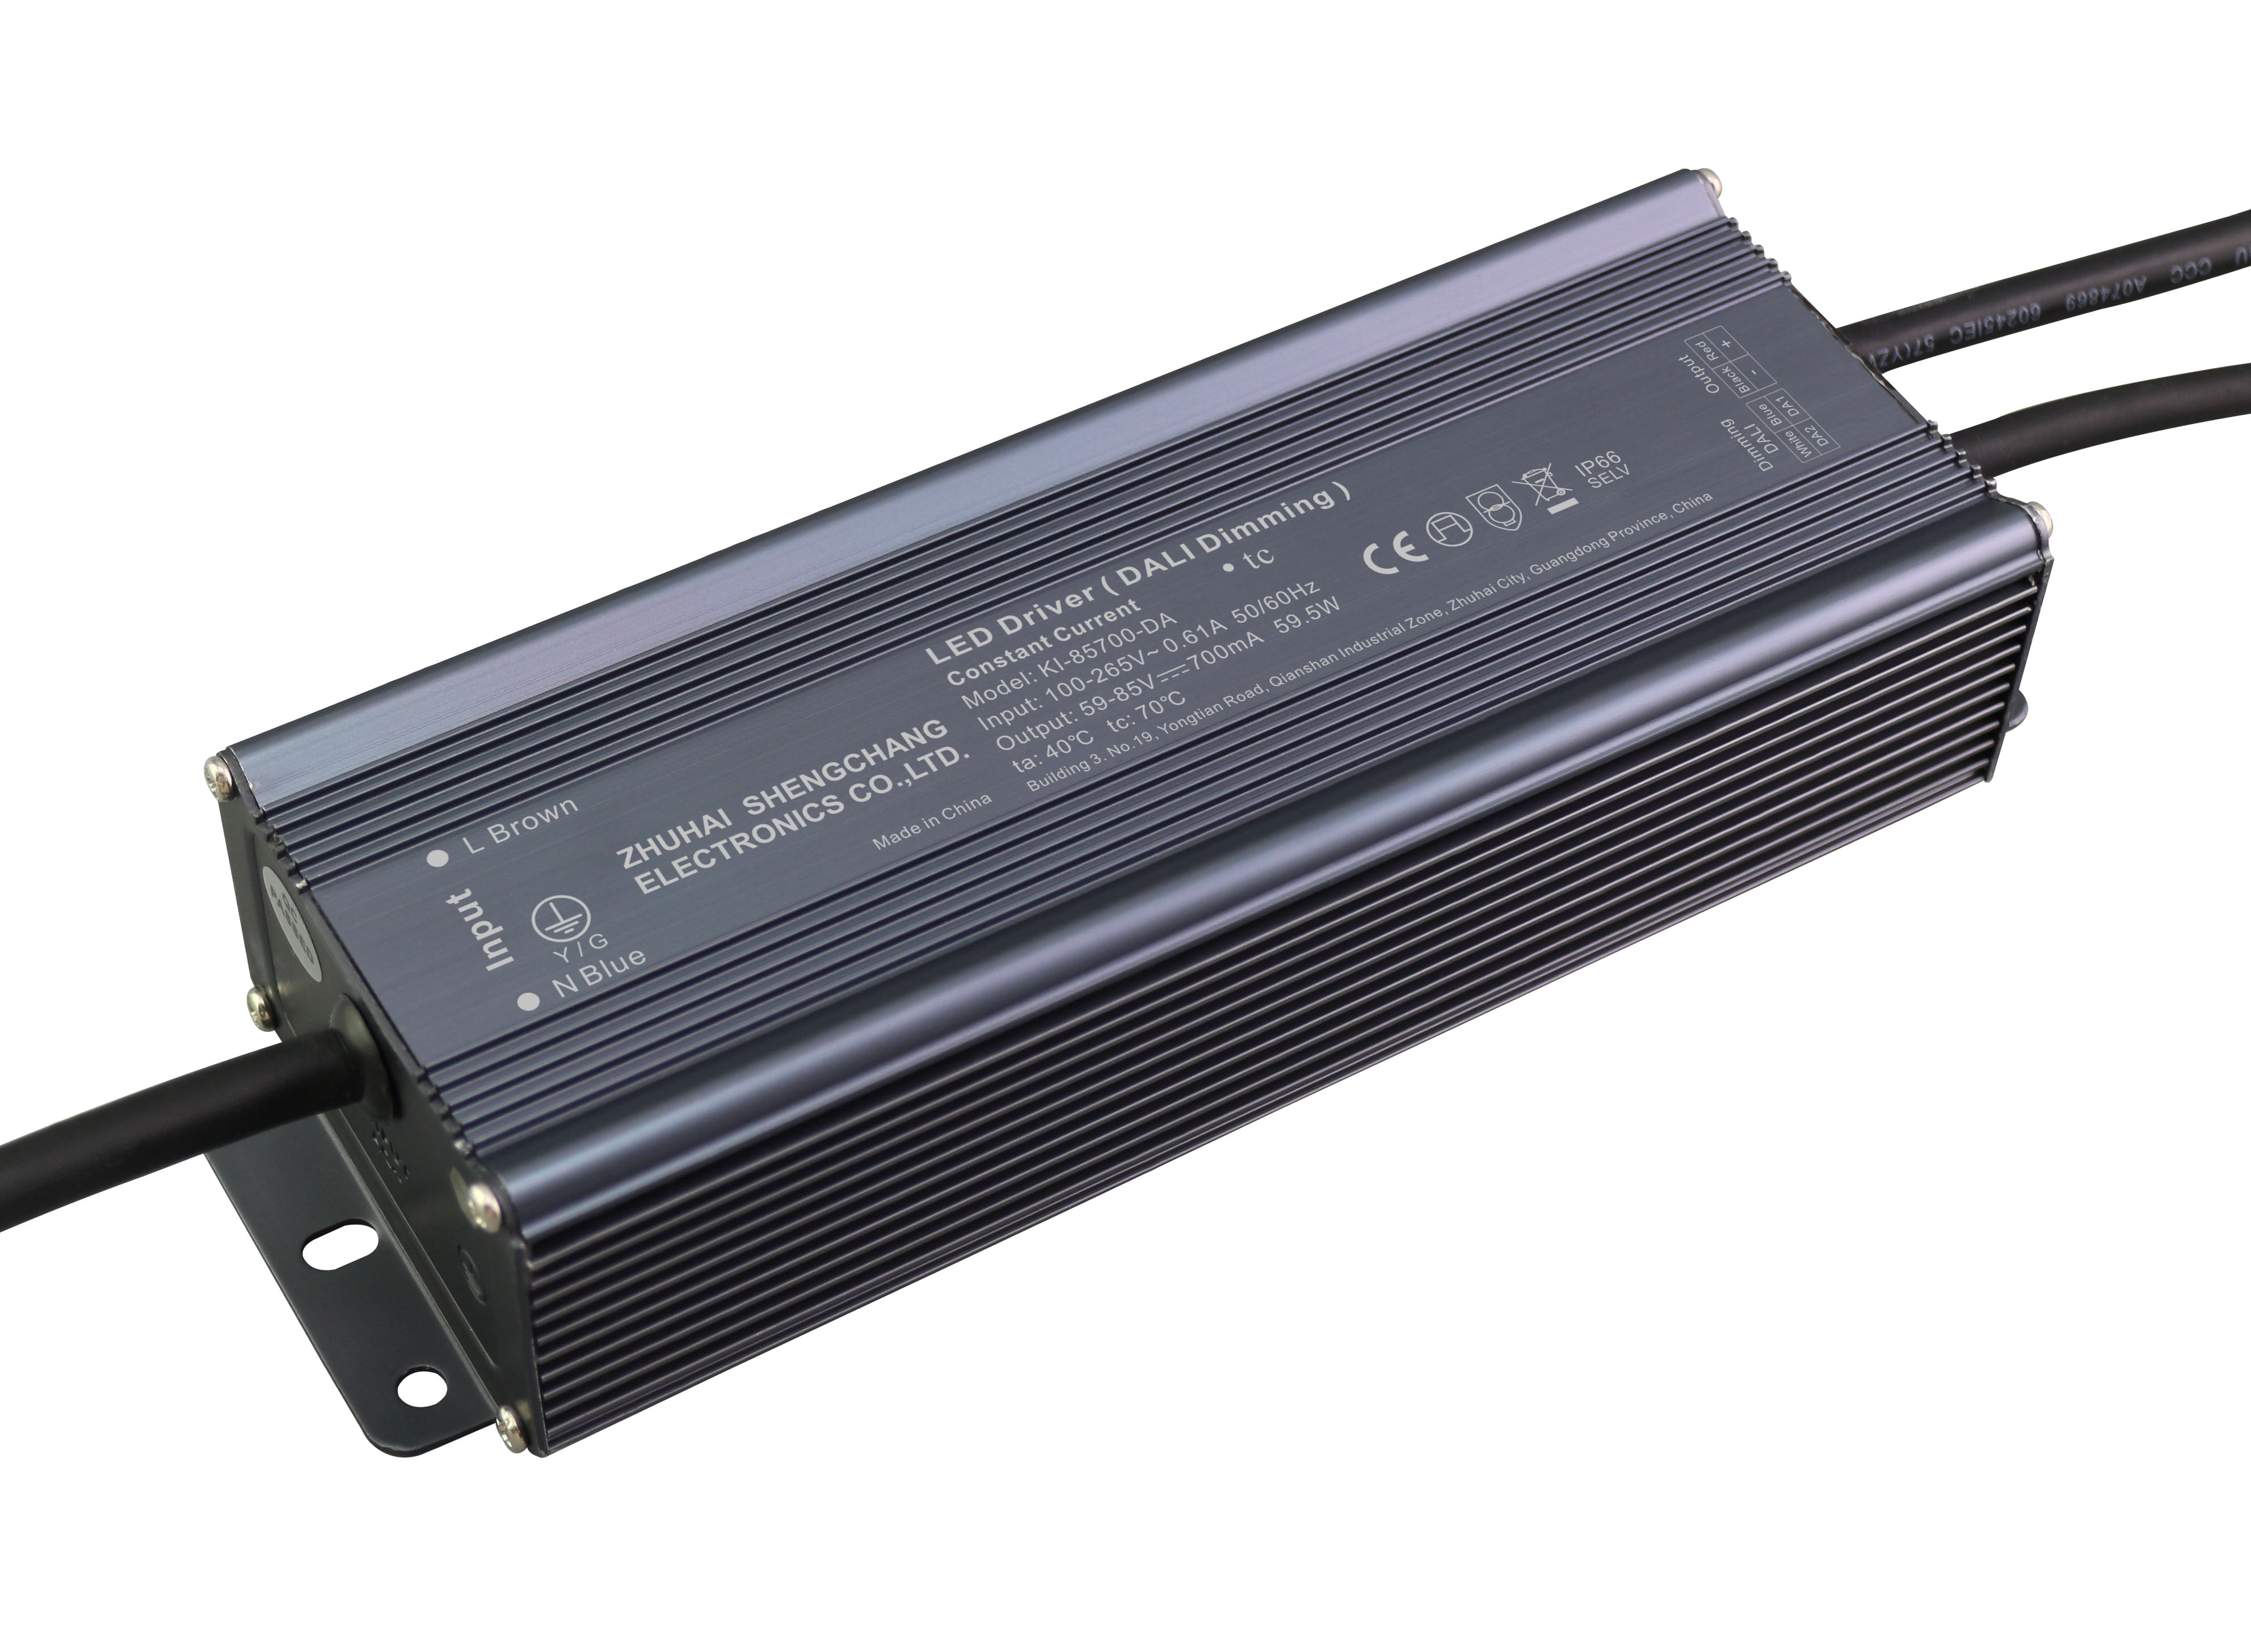 60W DALI constant current dimmable LED driver